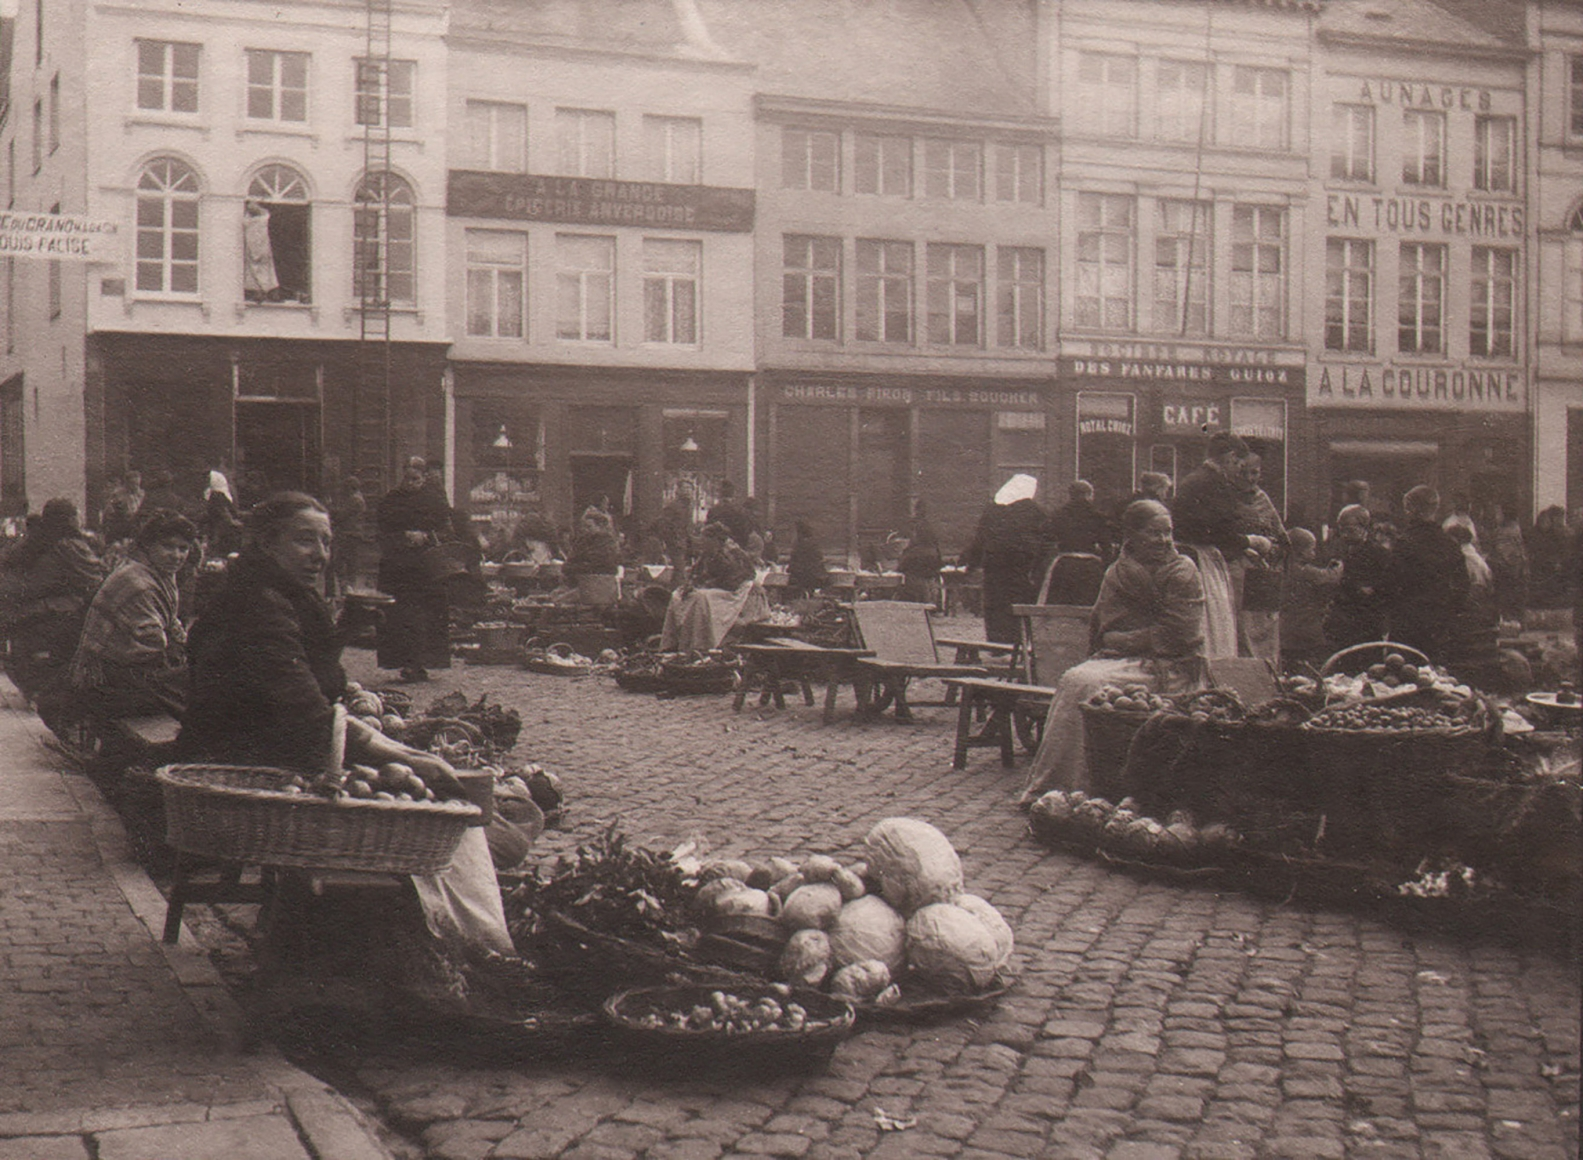 23. Léonard Misonne, Untitled, c. 1930. Market vendors on a cobbled commercial street with various forms of produce. Sepia-toned print.